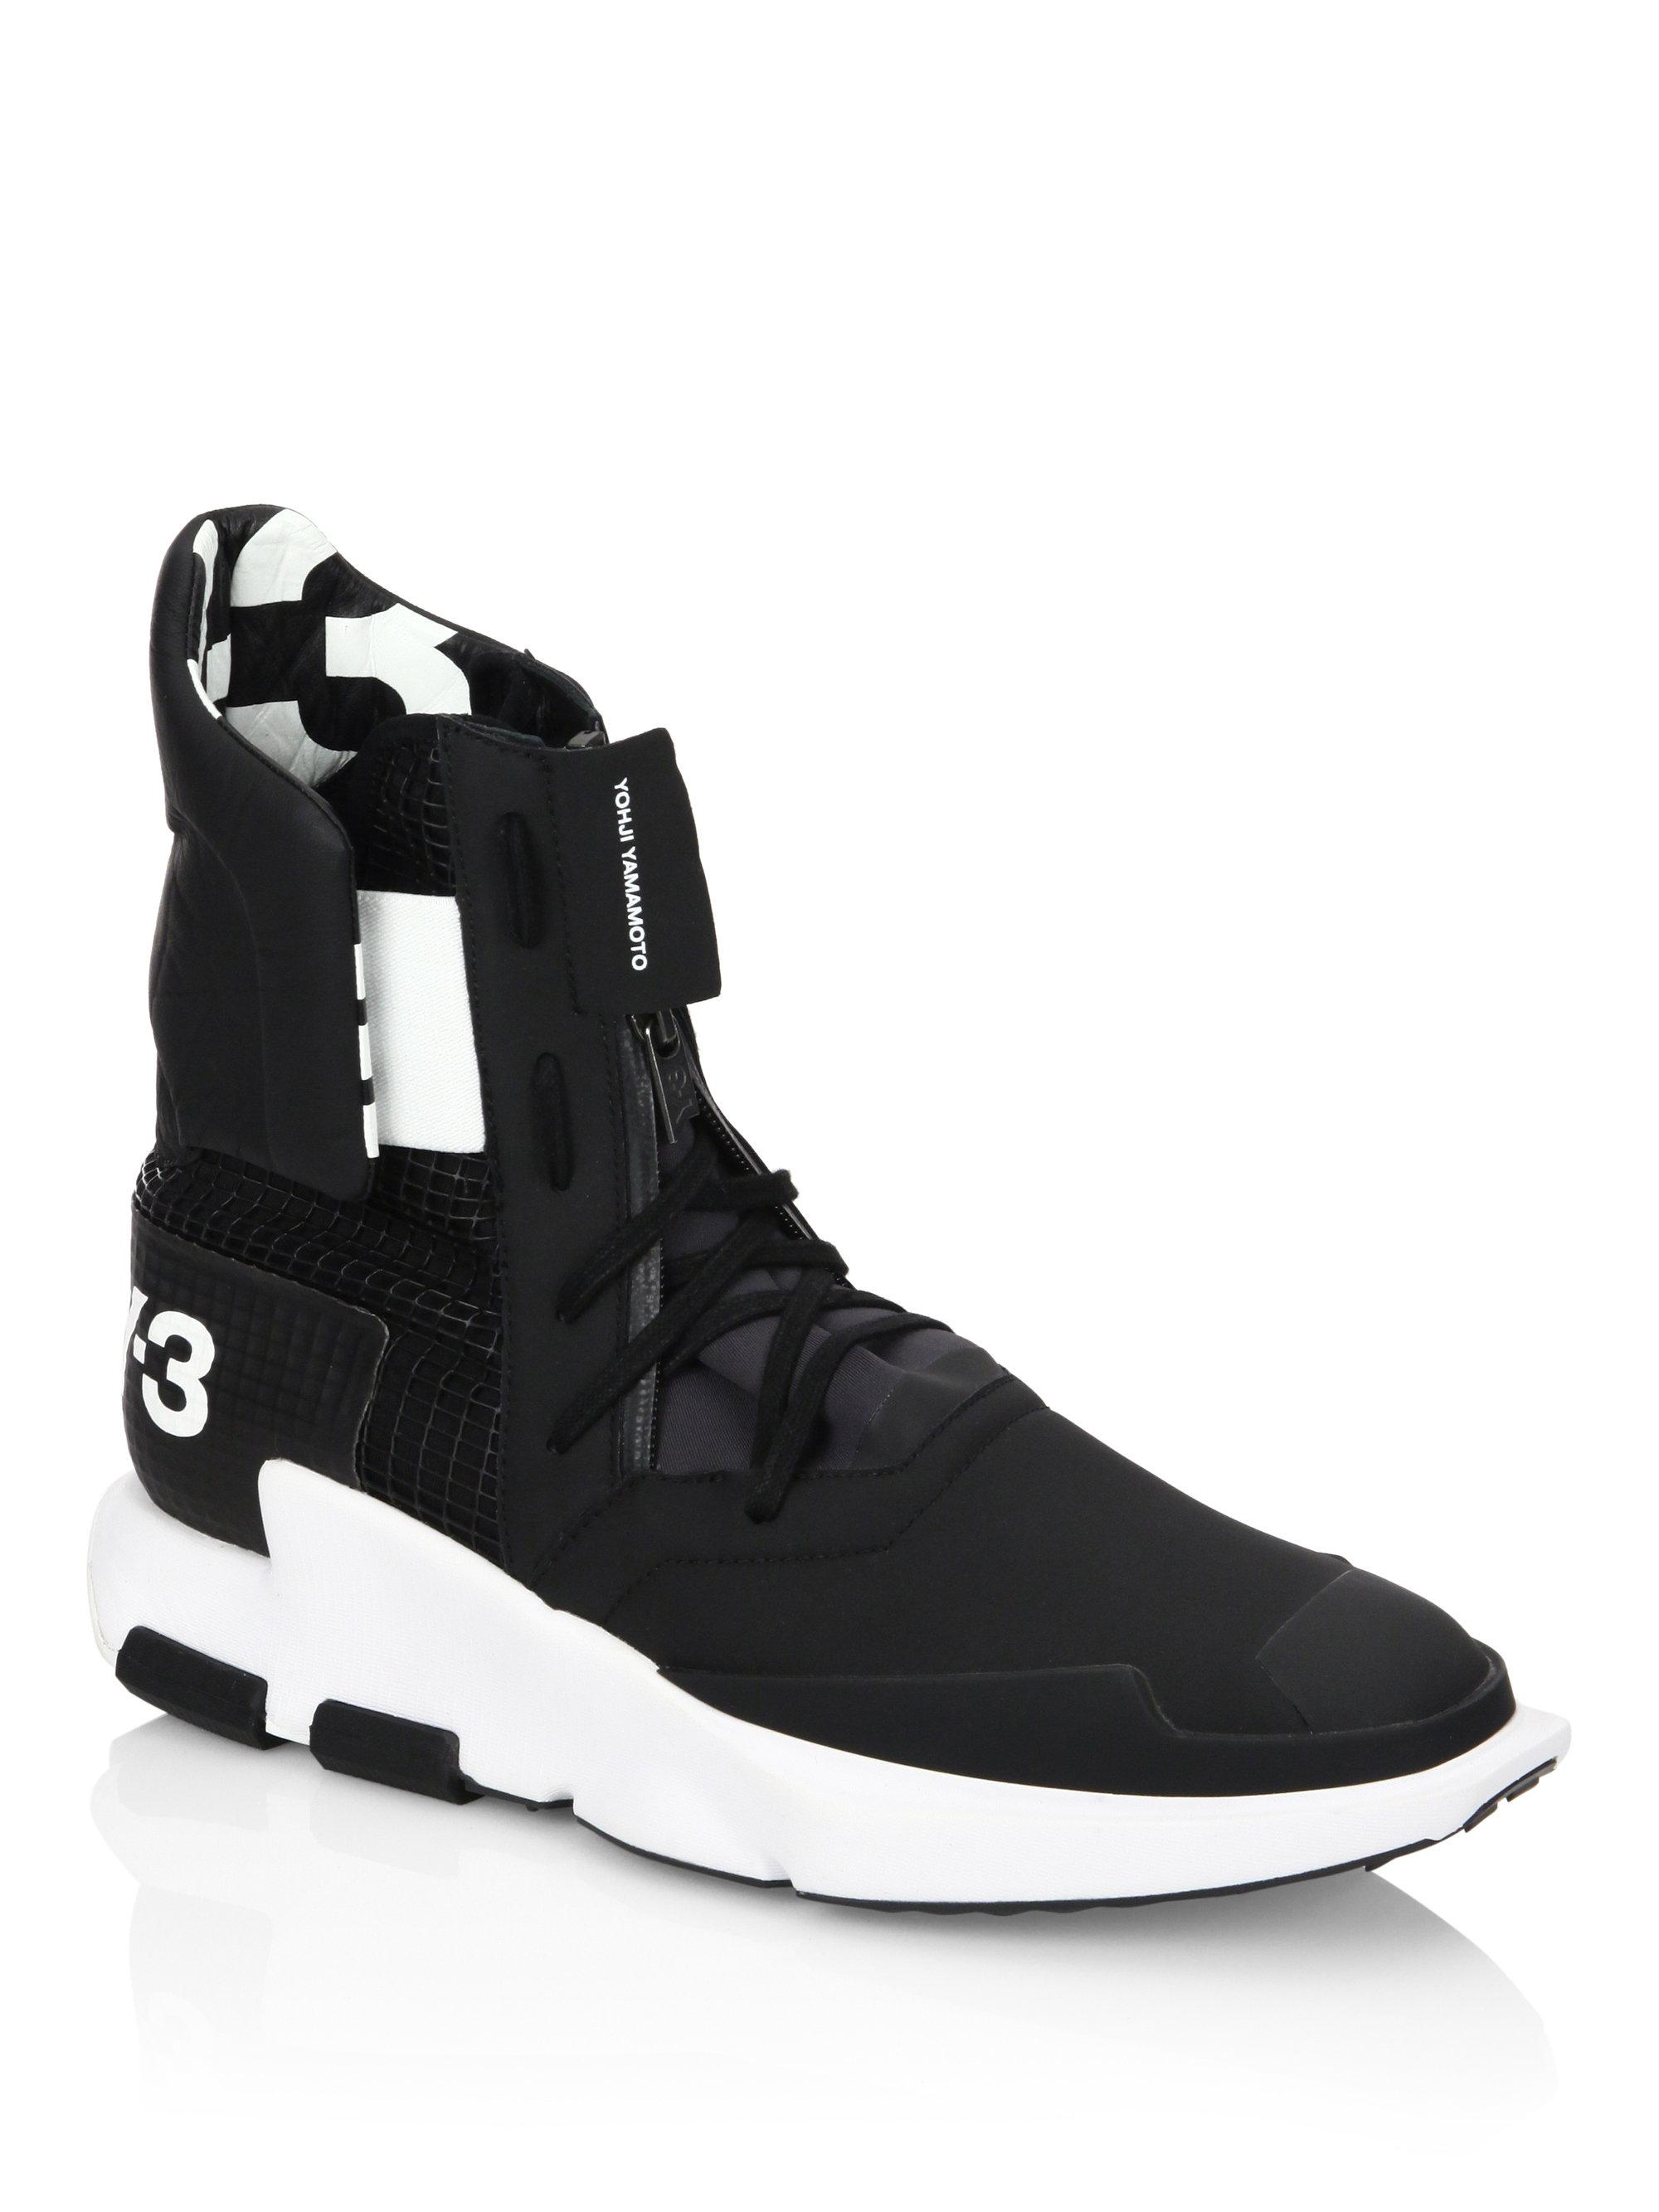 super popular 97f64 b61ad Y-3 Y3 Noci High Top Sneakers in Black for Men - Lyst